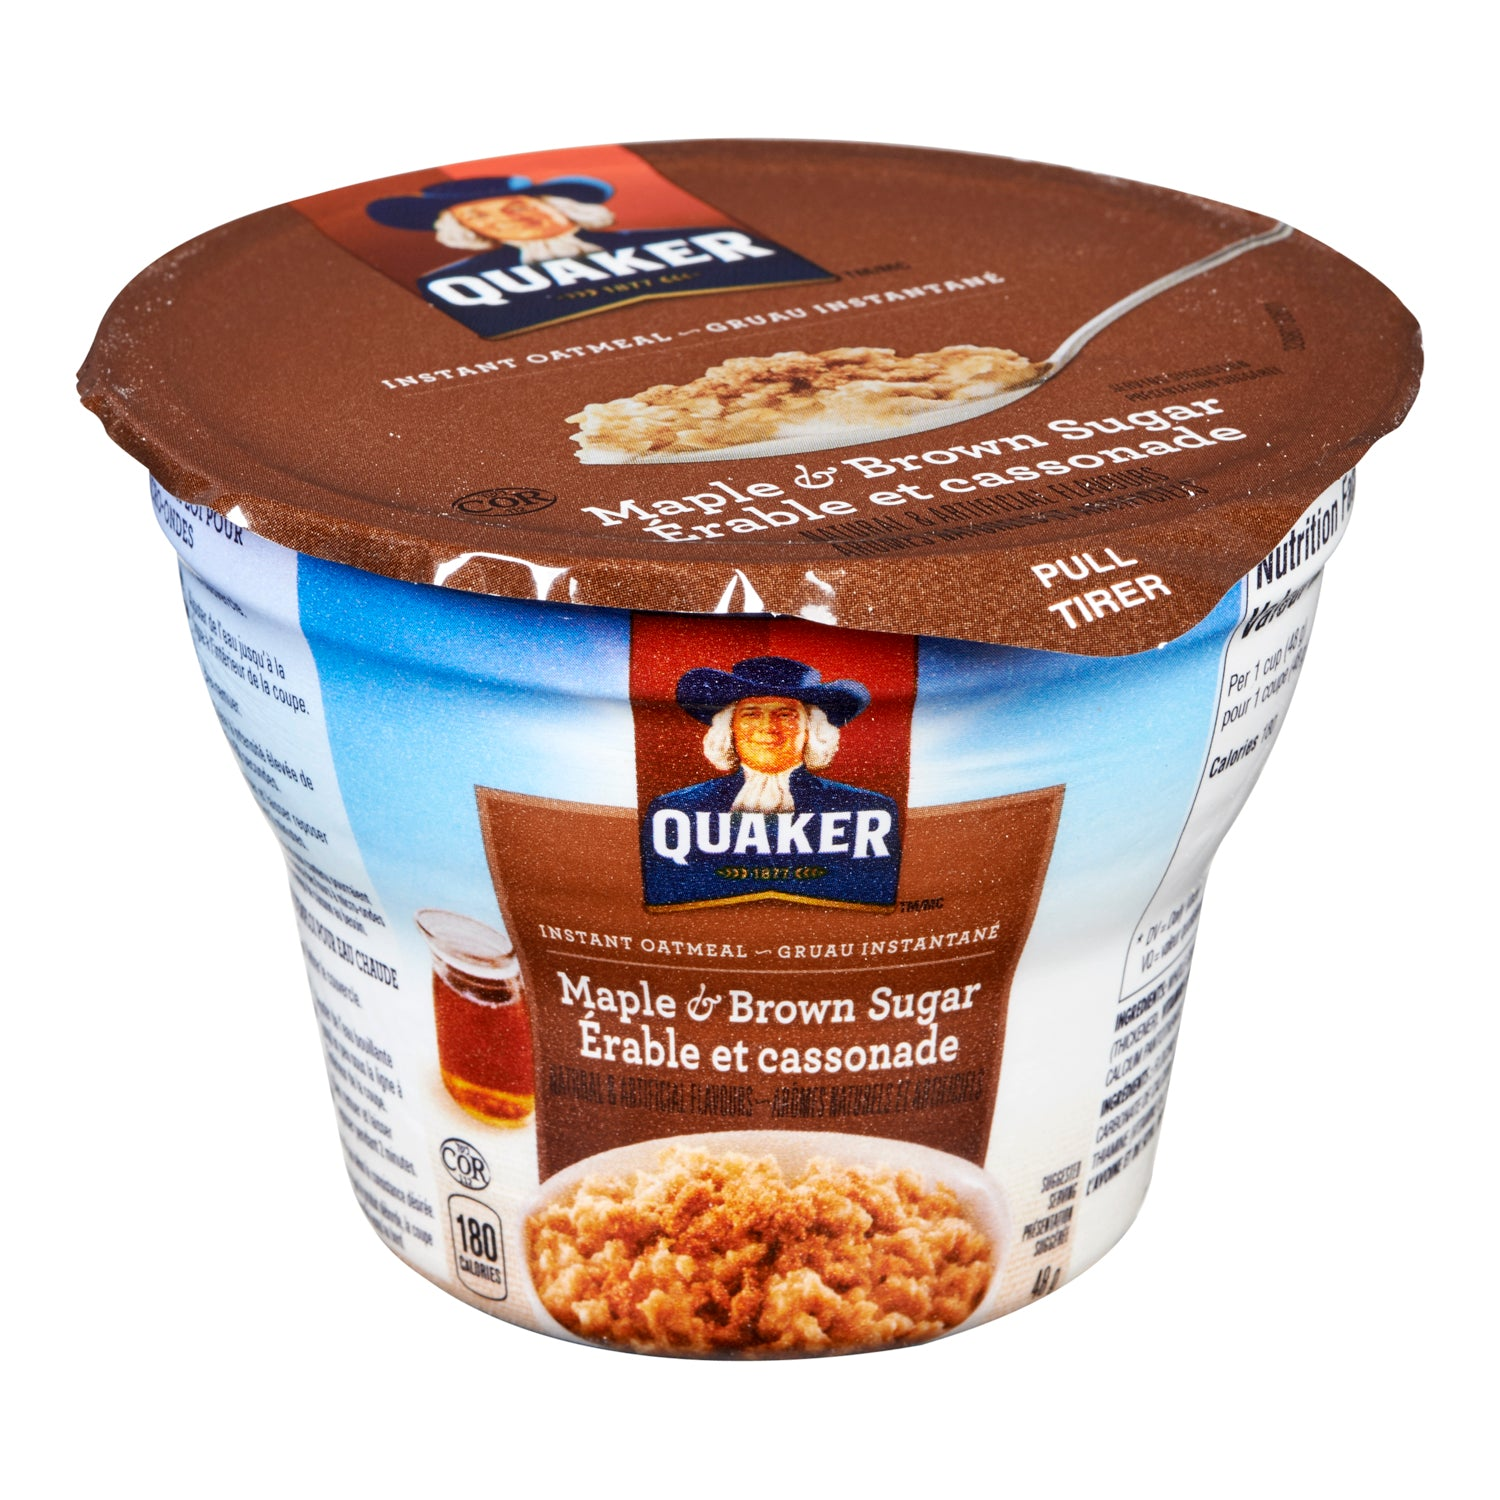 Quaker Maple Brown Sugar Flavoured Instant Oatmeal 48 g - 12 Pack [$1.33/each]